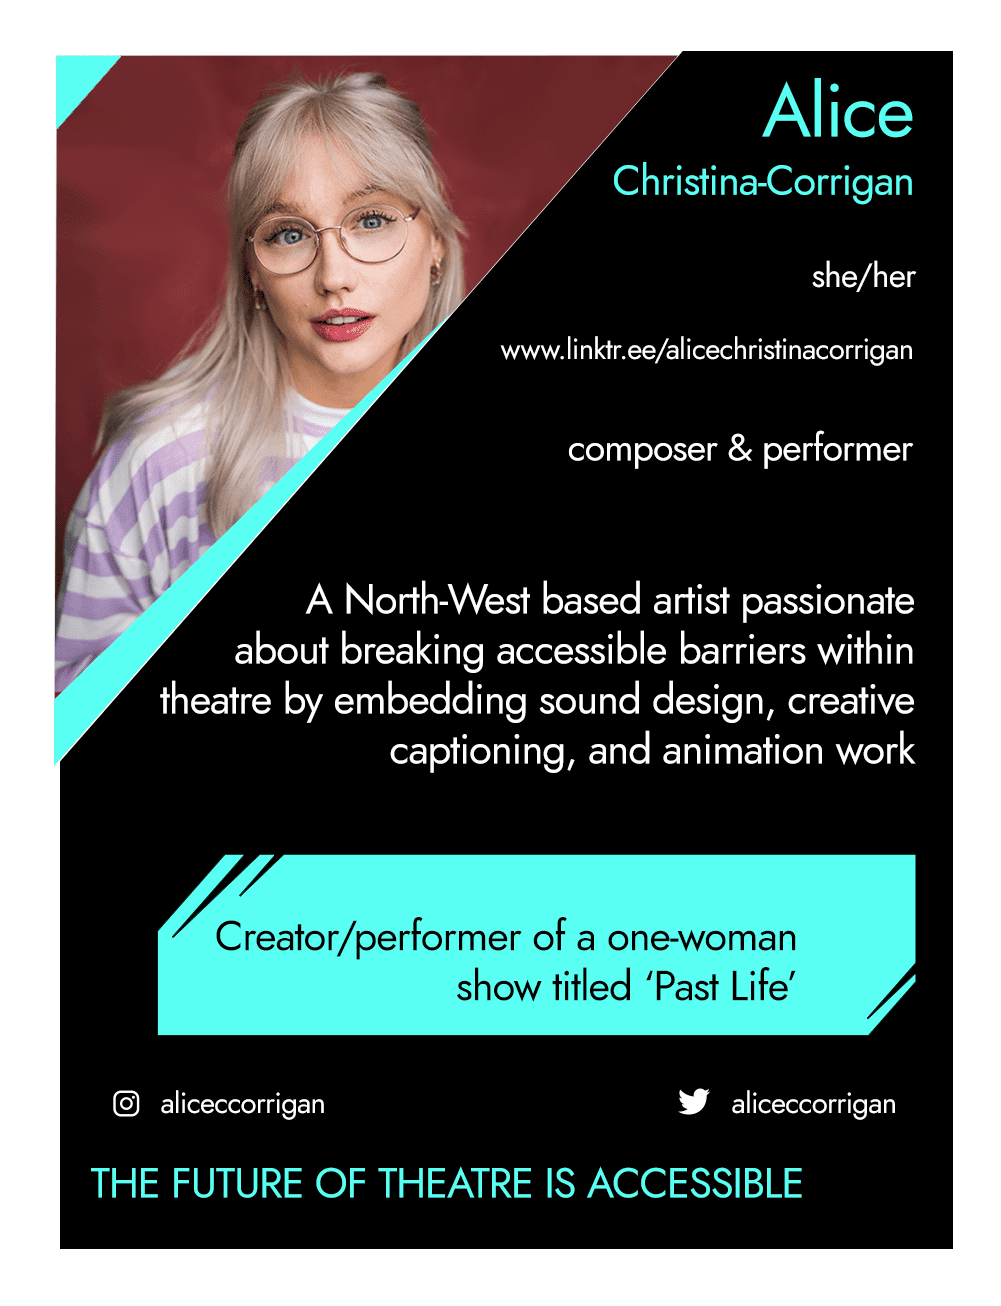 This is the front of an artist announcement card for Alice. The design is styled on an American baseball card. The card has a thin white border and the rest of the card is black with turquoise accents. On the left hand corner, there is a triangular cross section of a photo of Alice. A portrait photograph, Alice wears clear circle glasses, a purple and white striped T-shirt with her hair half up half down. To the right of the photo, there is the artist's name, Alice, pronouns, she/her, website, www.linktr.ee/alicechristinacorrigan, and artistic practice, Composer & Performer. Below this is a short artist biography, which reads A North-west based artist passionate about breaking accessible barriers within theatre by embedding sound design, creative captioning and animation work. In a turquoise rectangle below this, the card highlights what the artist's role is within CRIPtic. For Alice this reads creator/performer of a one woman show titled 'Past Life'. Below this are the artist's social media handles @aliceccorrigan, and a quote selected by the artist. This reads: The future of theatre is accessible.